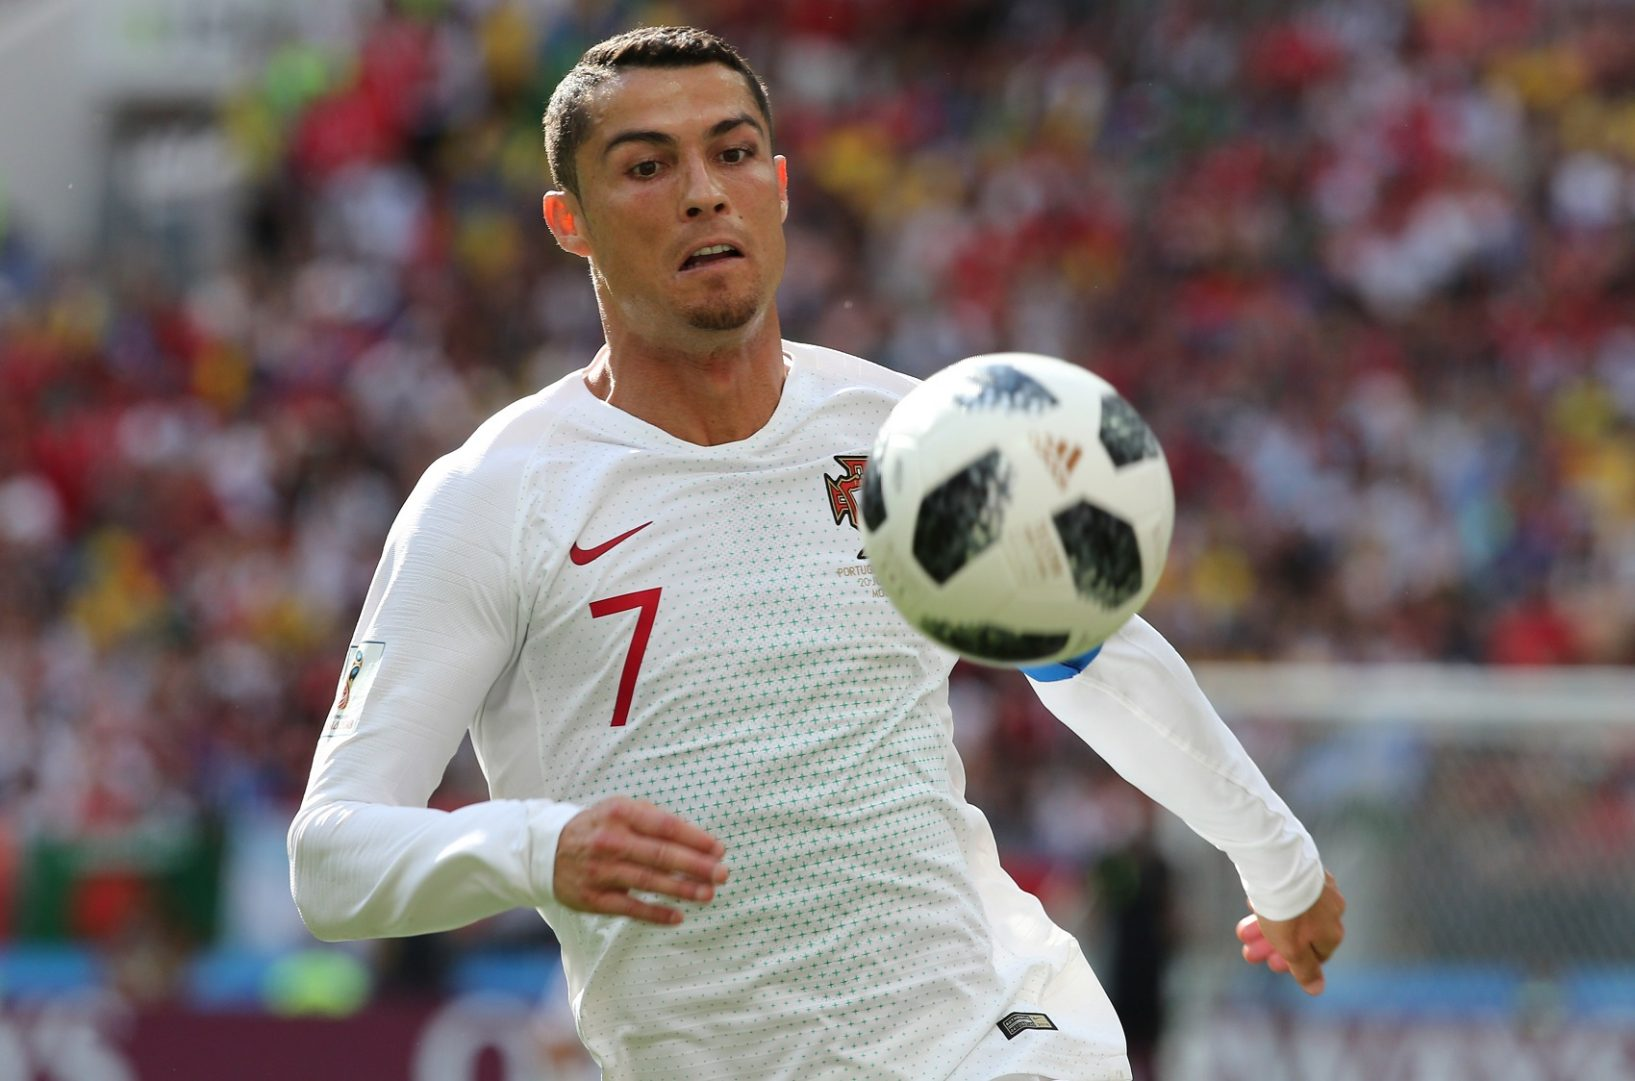 Cristiano Ronaldo Joins Italian Club Juventus For $117 Million, Ending A 9-Year Gig With Real Madrid